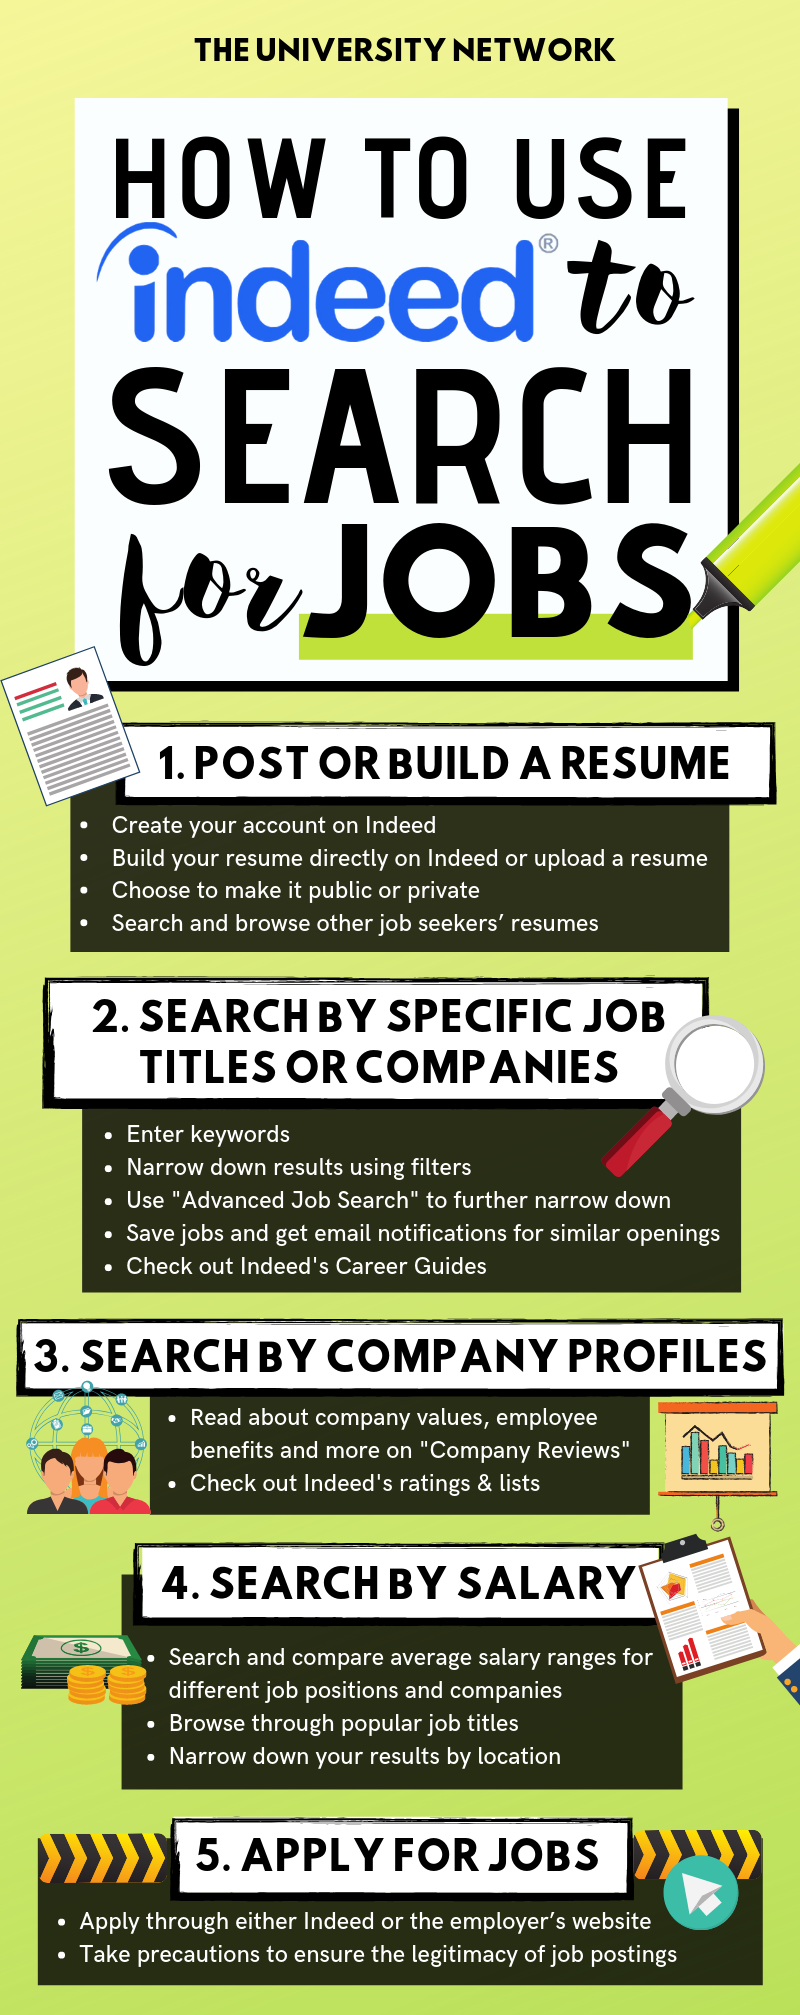 Indeed Job Search For College Students Job search, Job